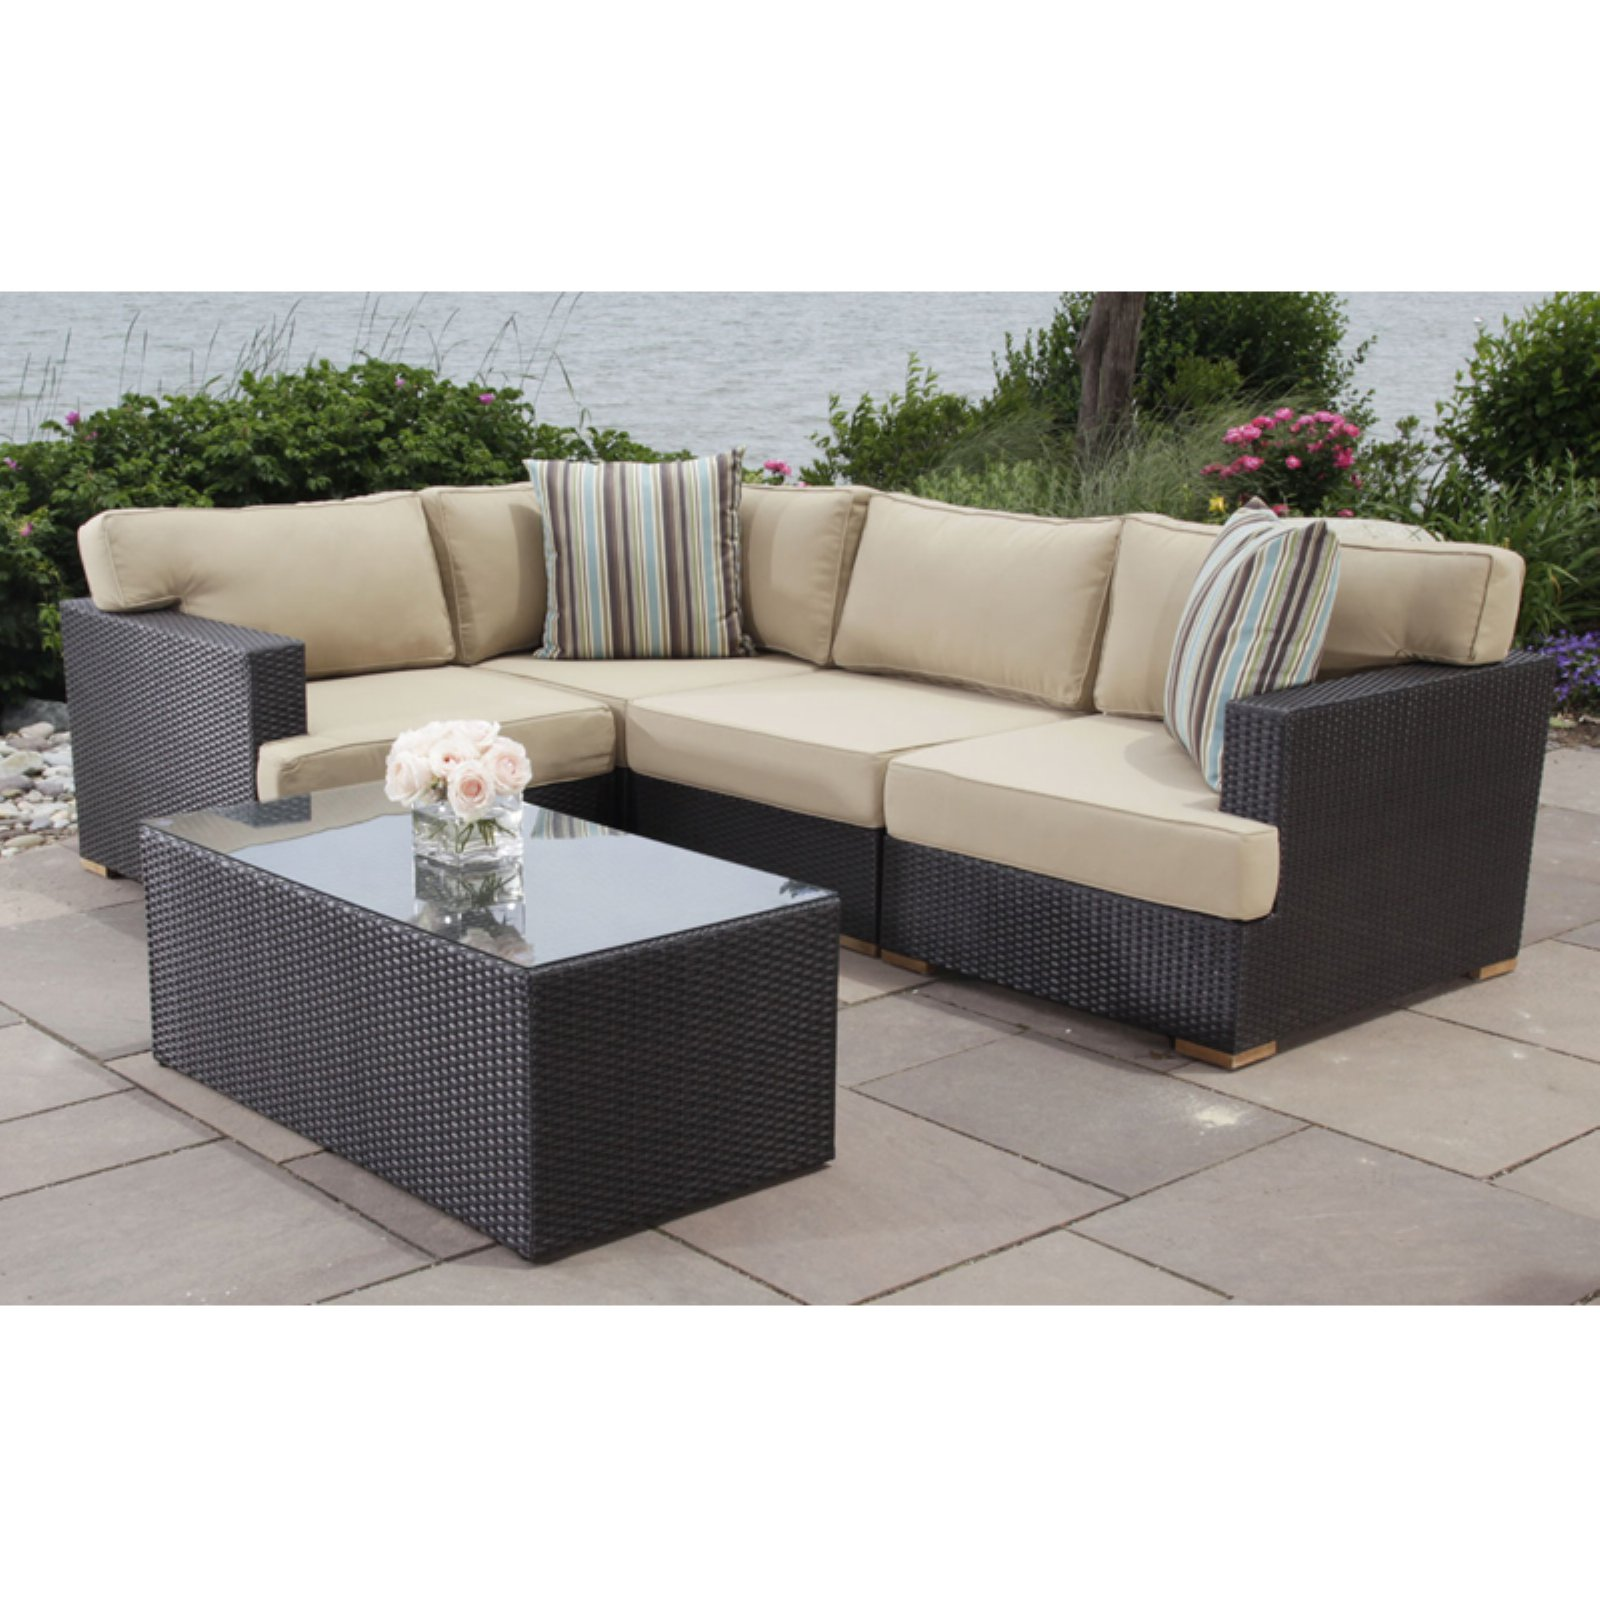 Outdoor Madbury Road Salina All Weather Wicker Patio Sectional Conversation Set